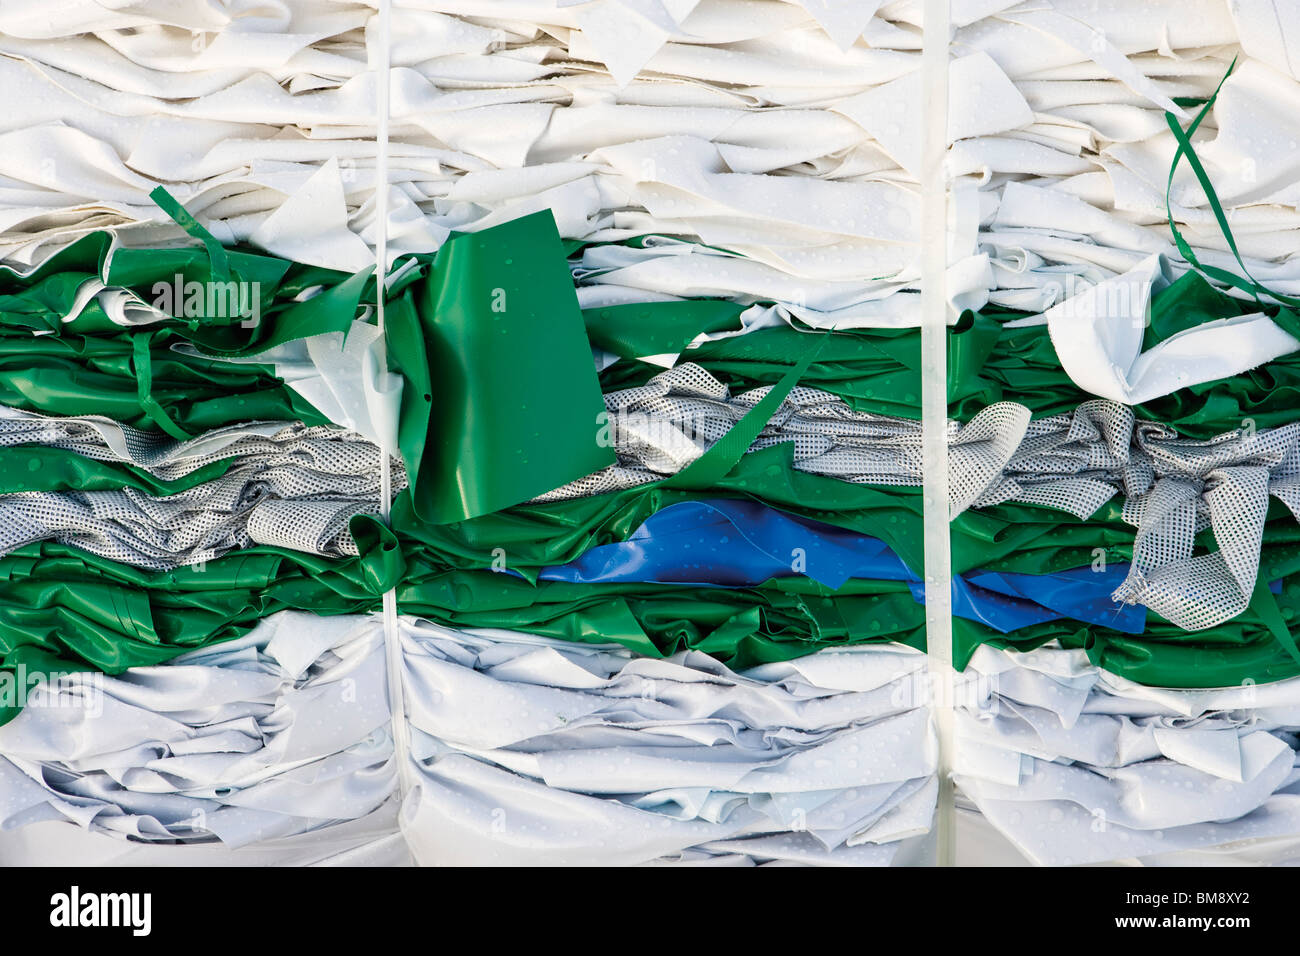 Storage of bales of PVC sheeting for recycling - Stock Image